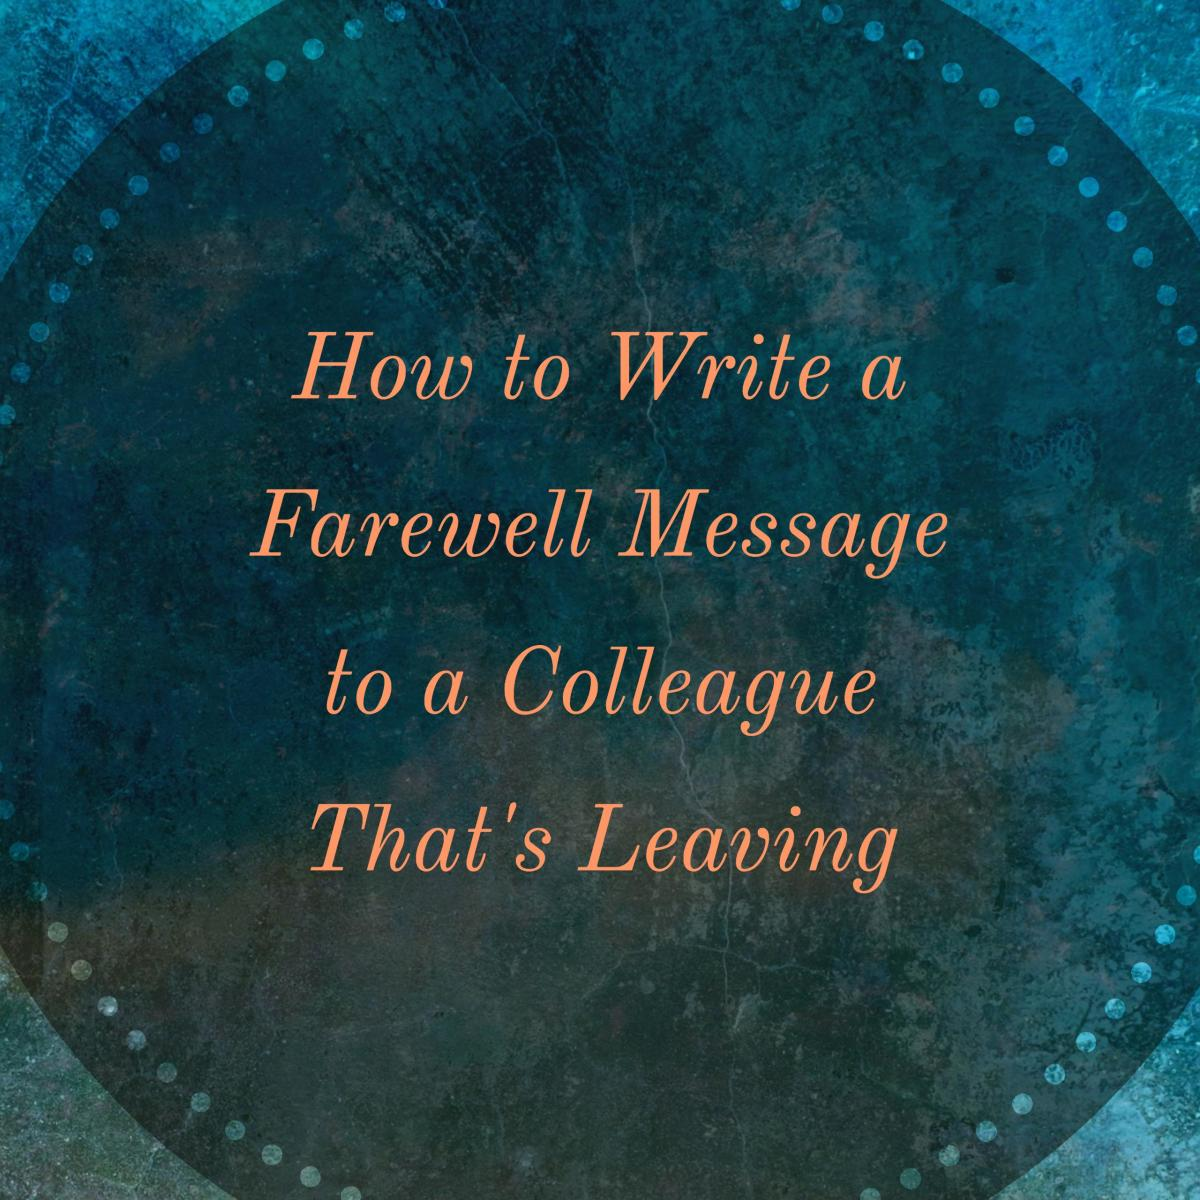 Learn how to write a farewell message to a colleague that's leaving your company.